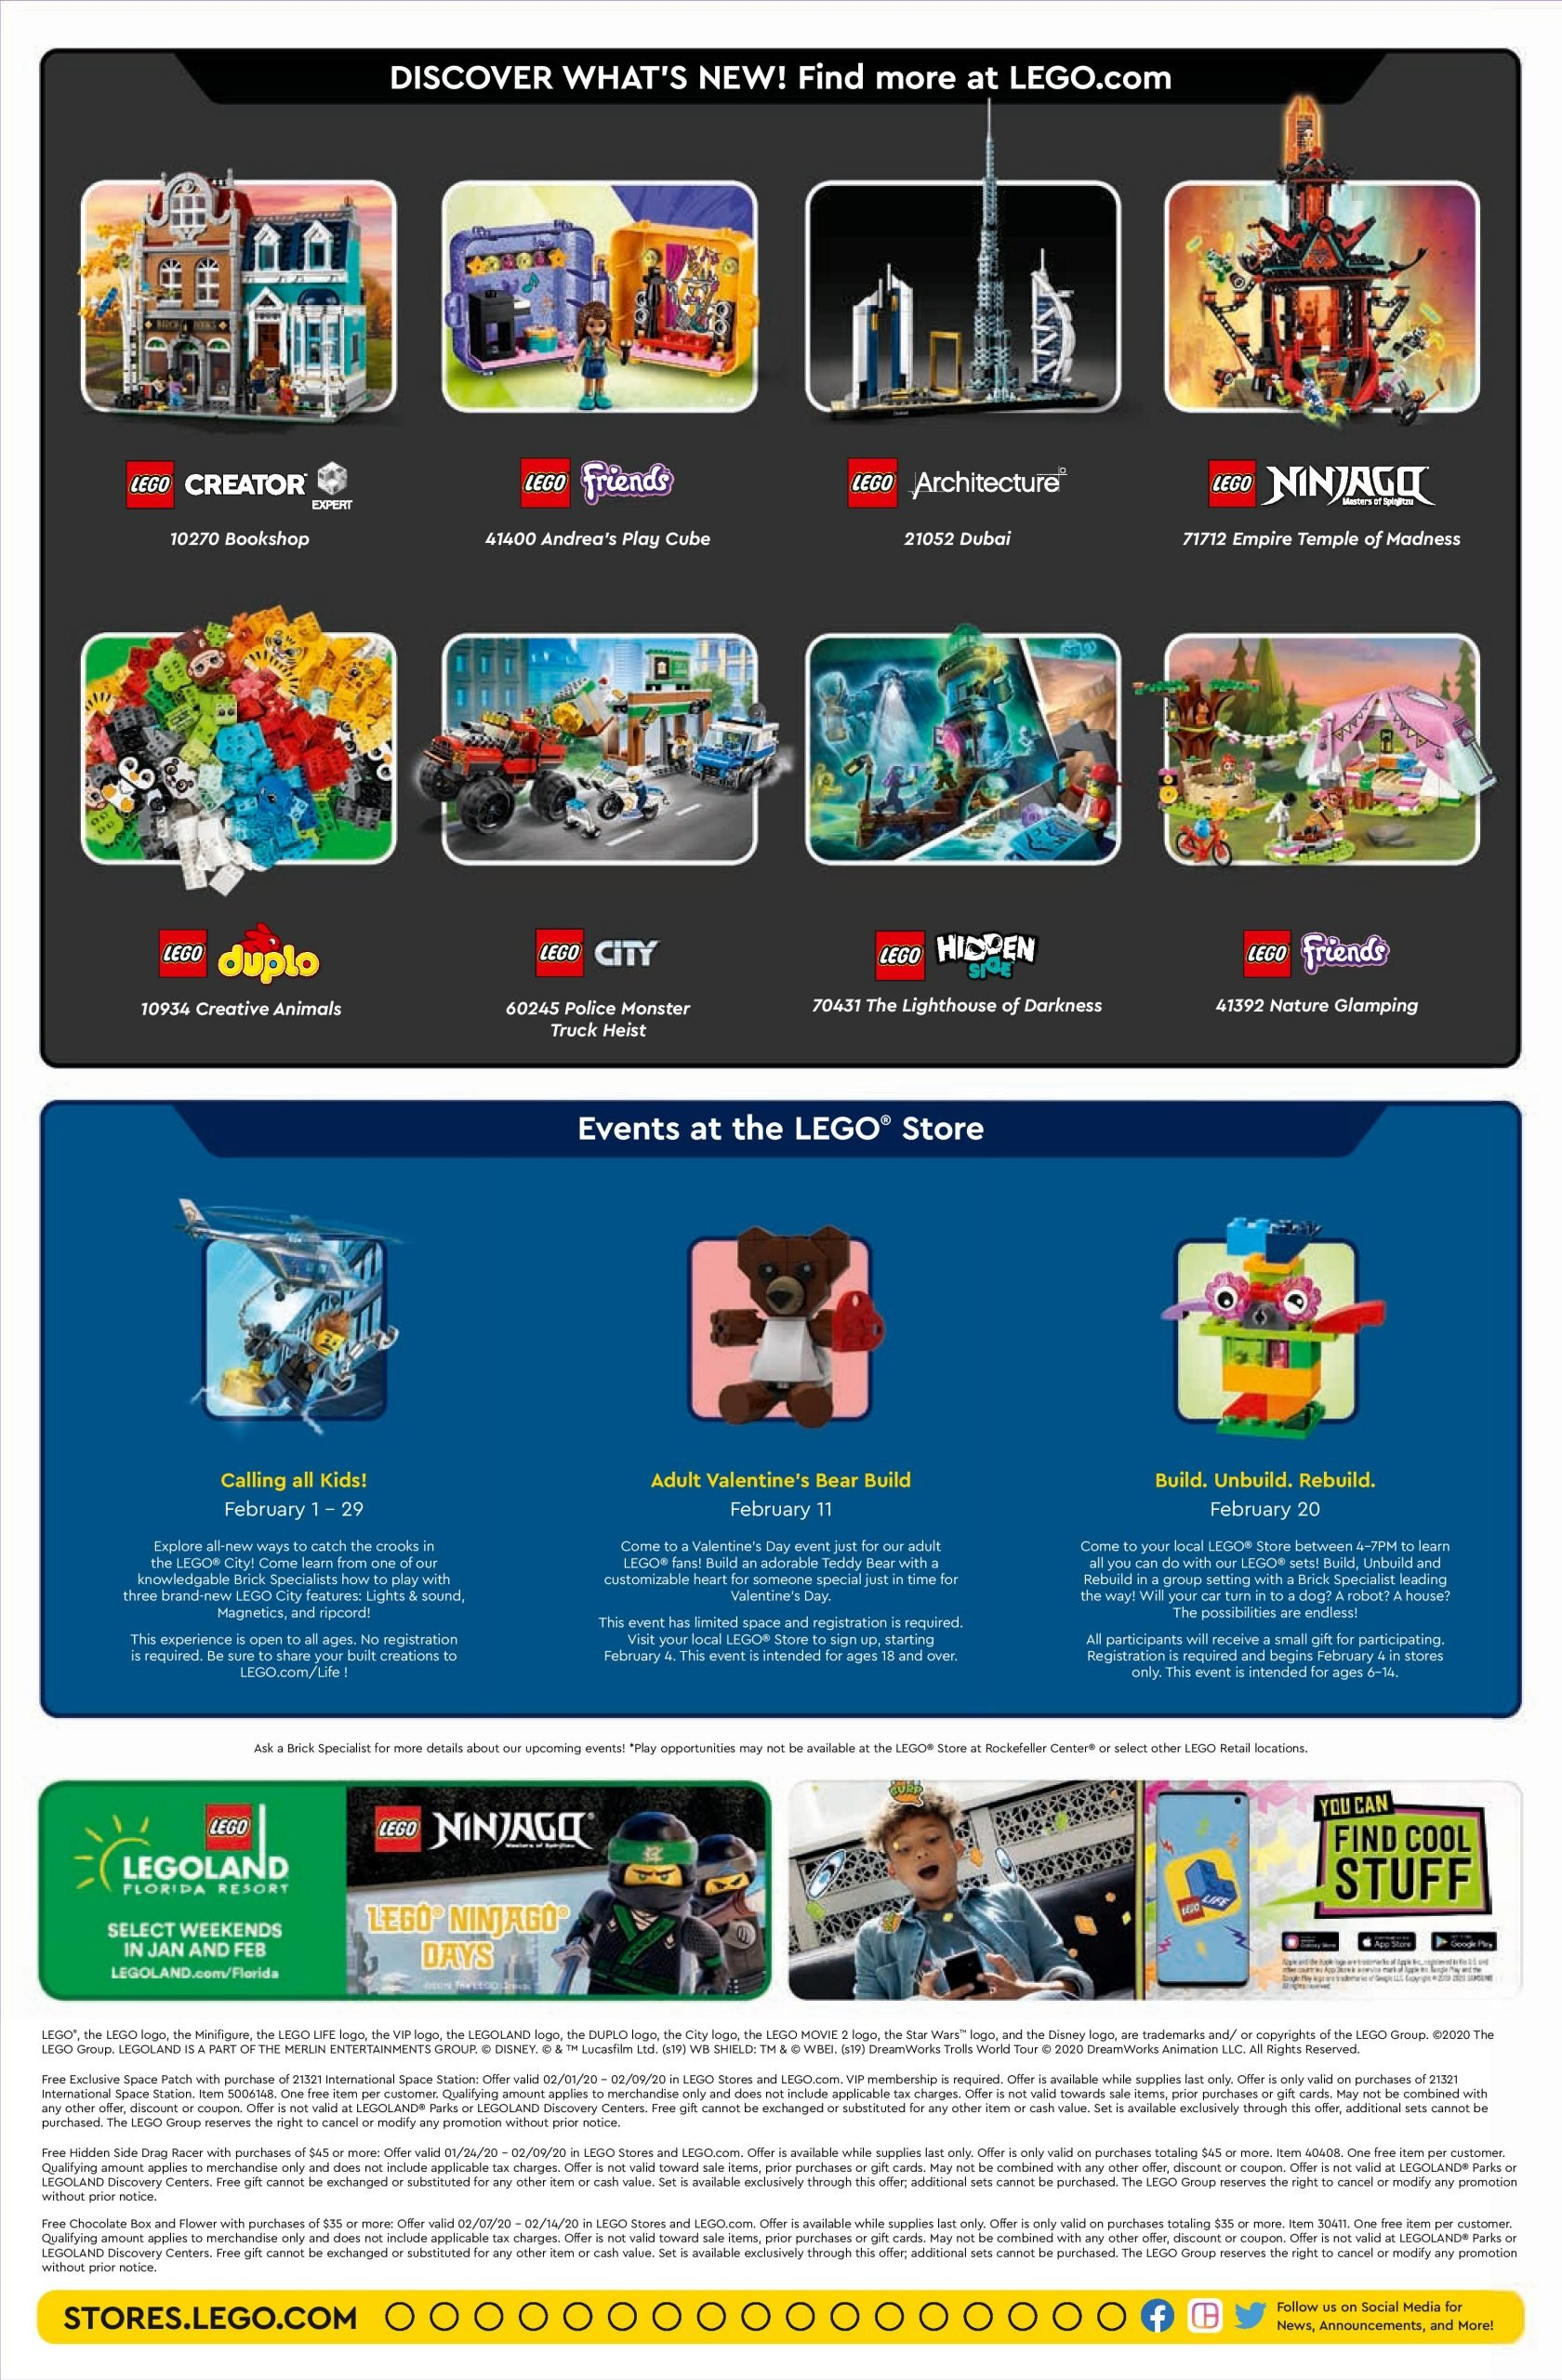 Lego February 2020 Store Calendar Promotions & Events – The Calendar Three Monsts Temple